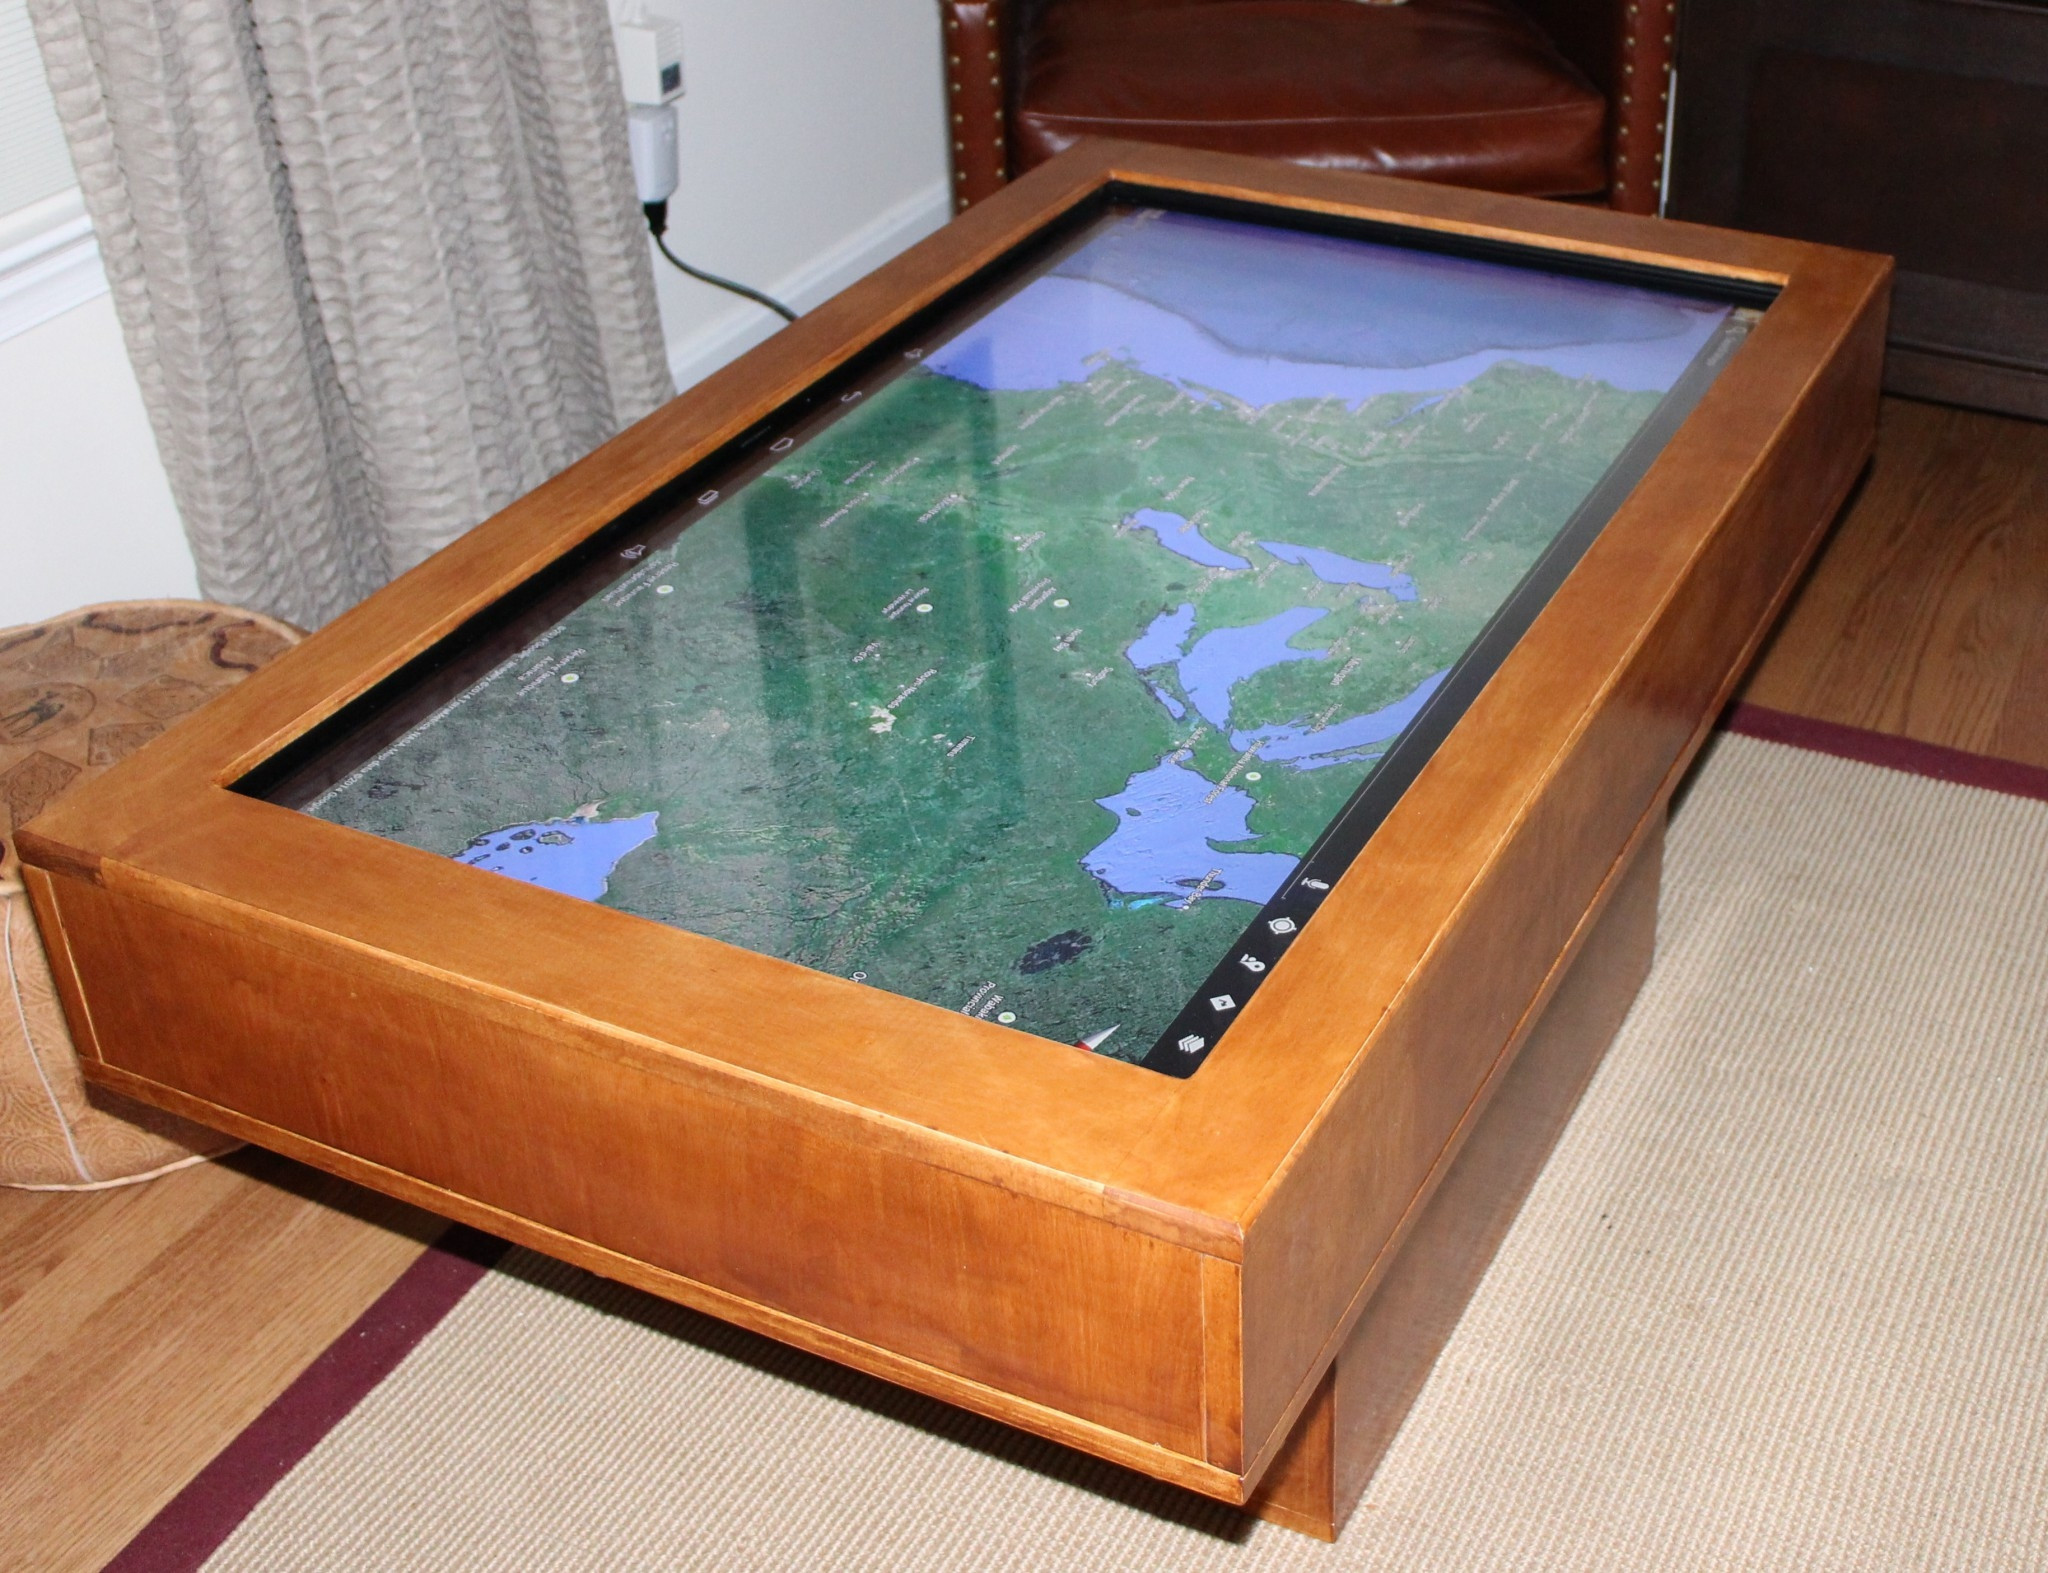 Best ideas about DIY Touchscreen Table . Save or Pin 20 Best Ideas of DIY Touch Screen Coffee Table Now.